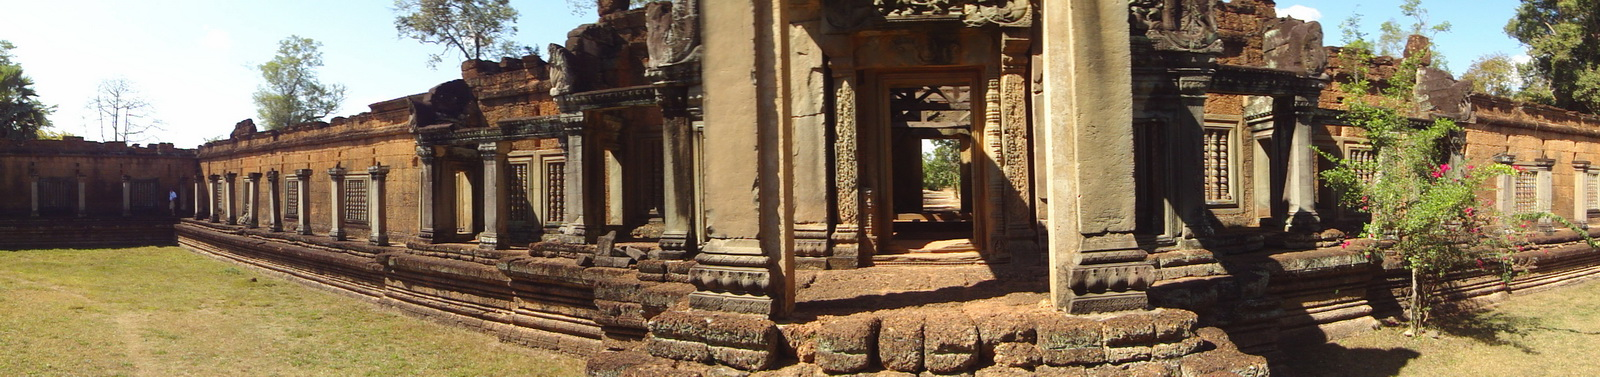 Banteay Samre Temple main gates East Baray 01